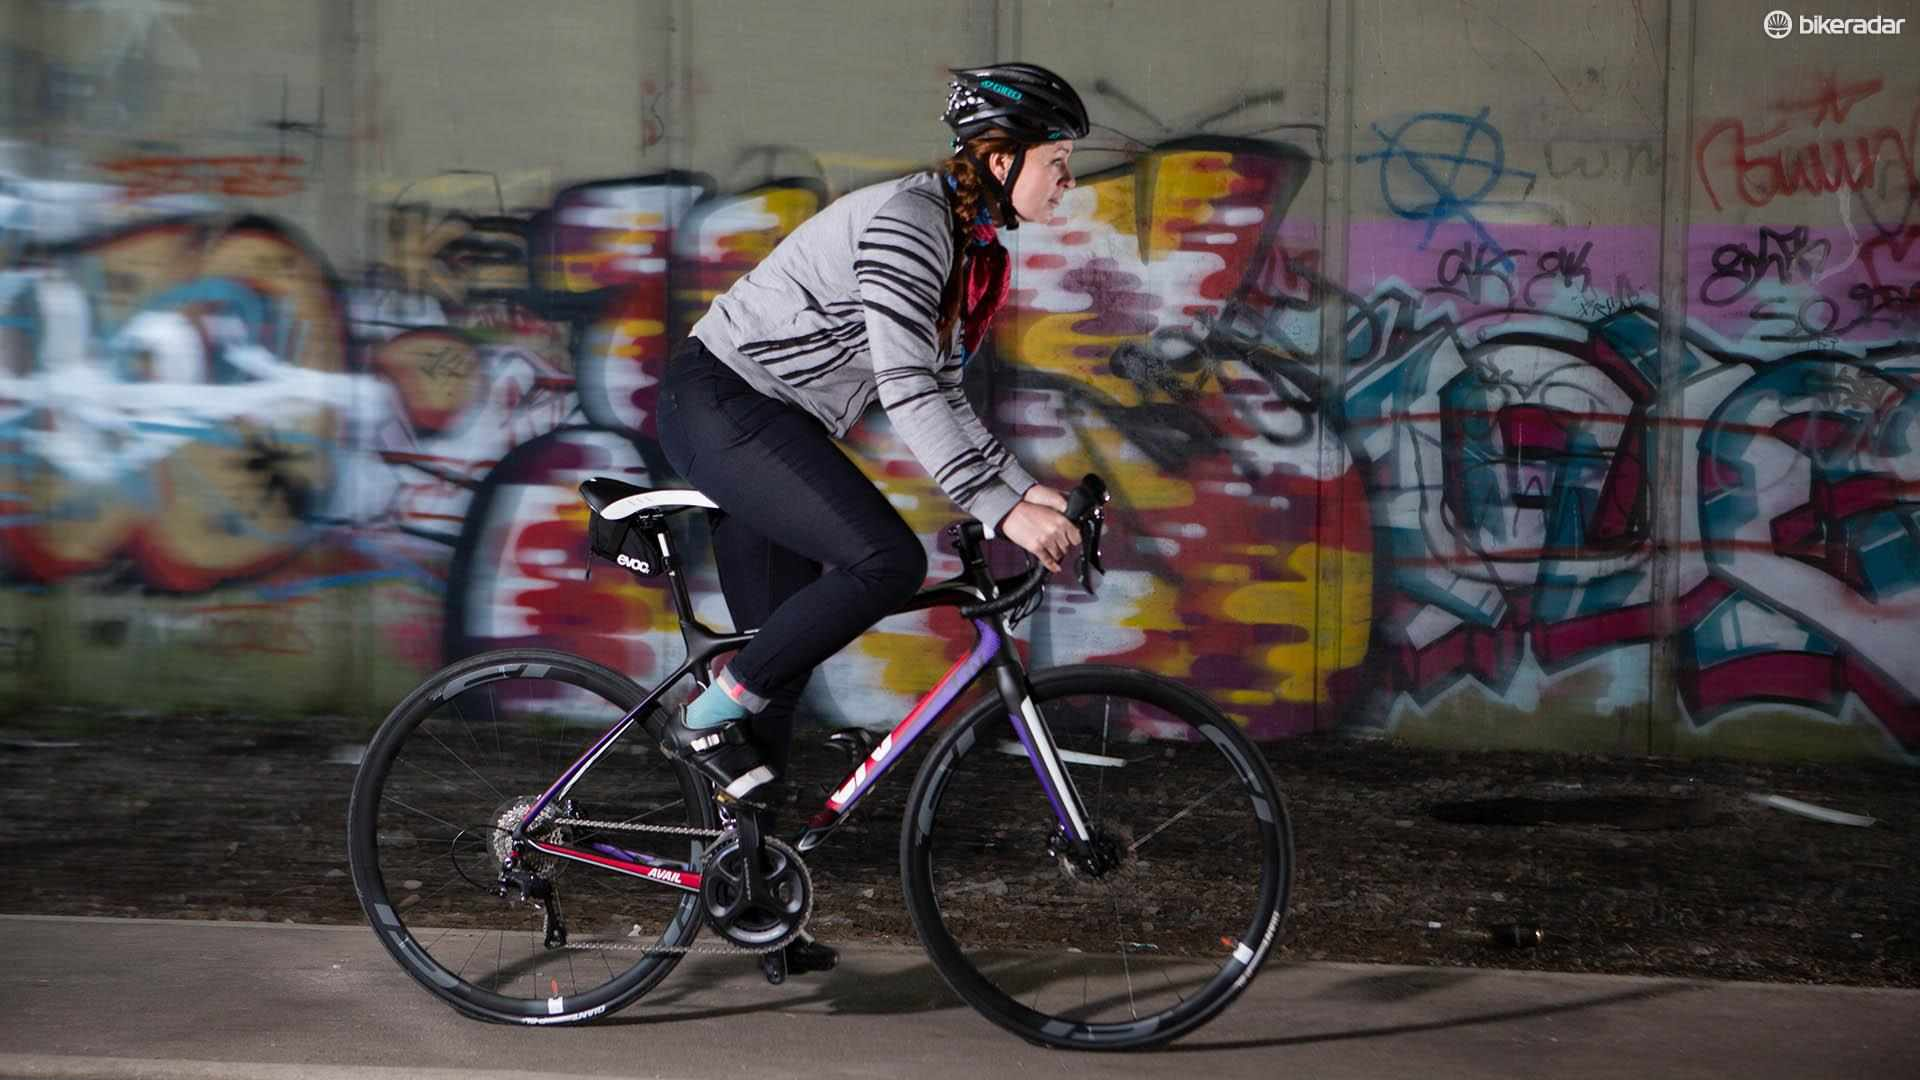 Liven up your commute with some Silly Commuting Racing